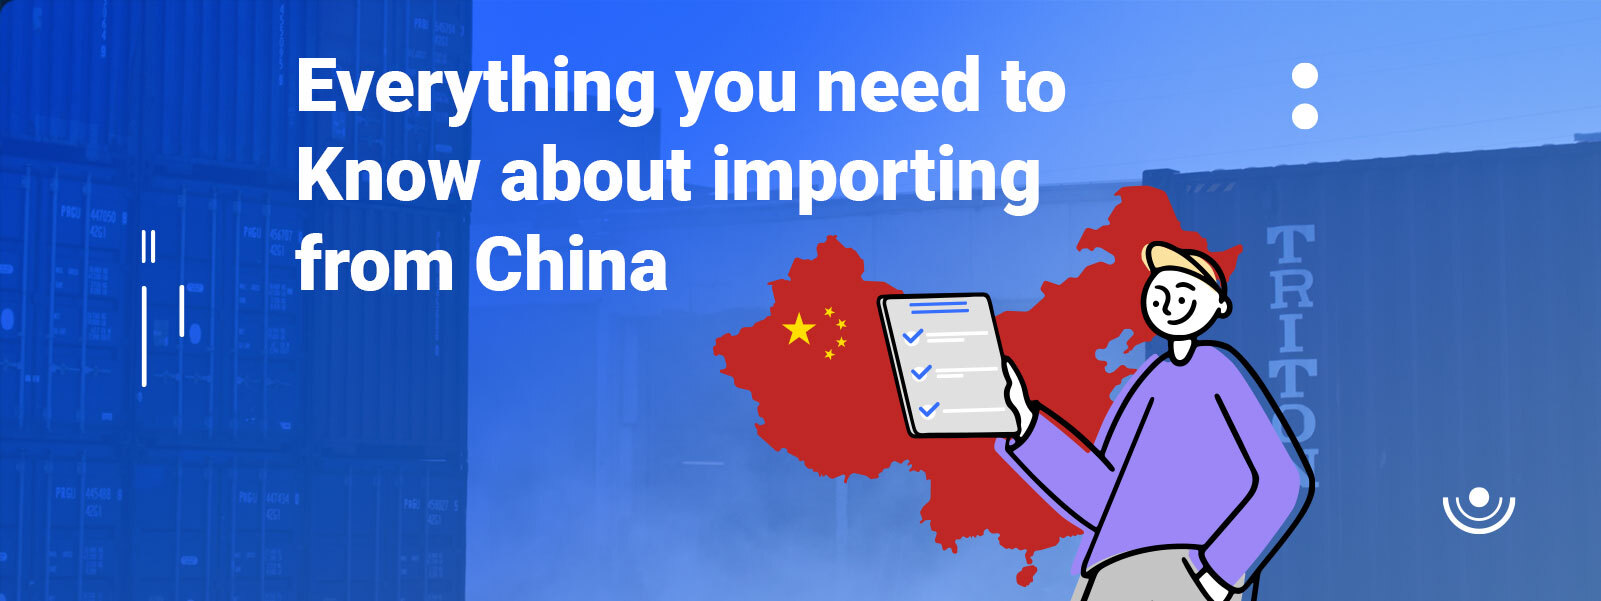 Everything you need to Know about importing from China to India